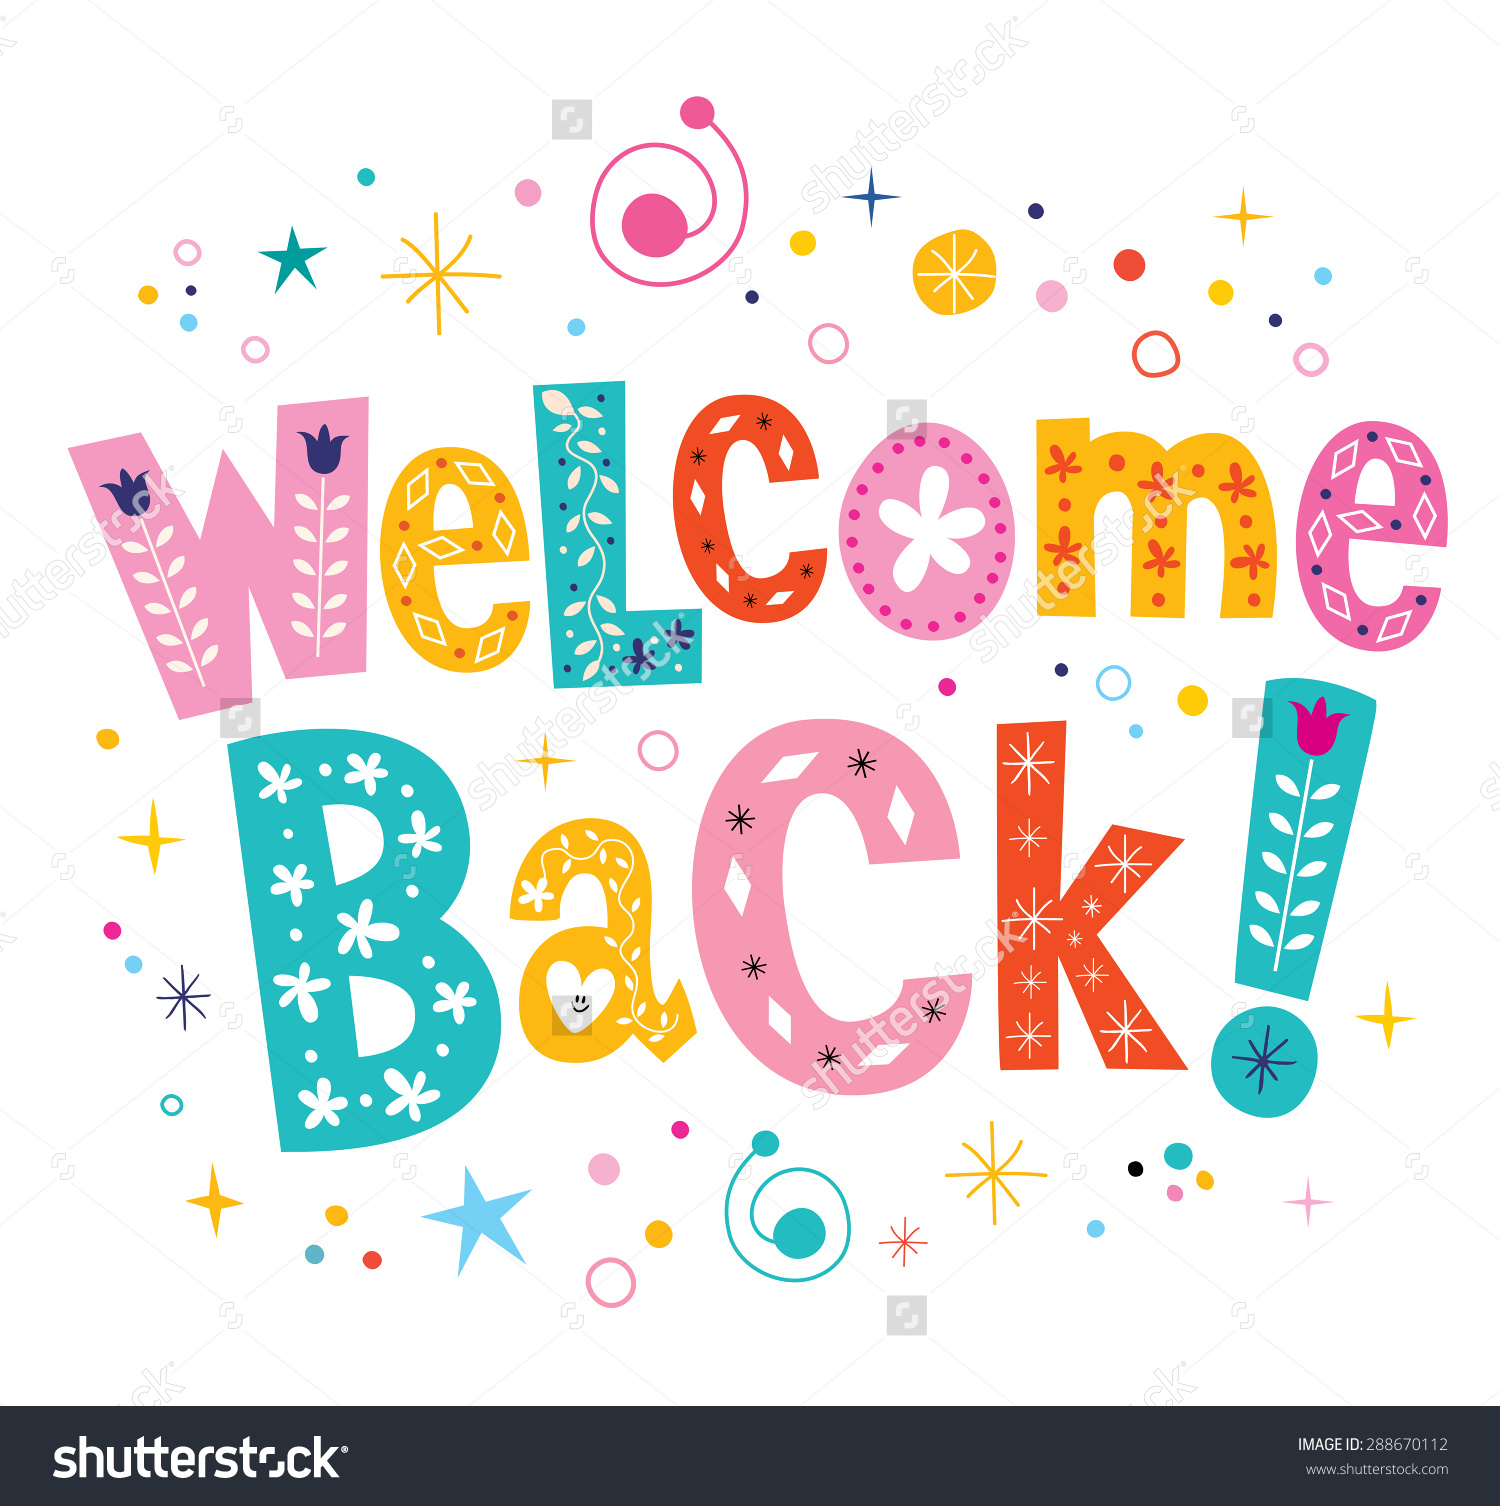 Free welcome to work. Back clipart cute